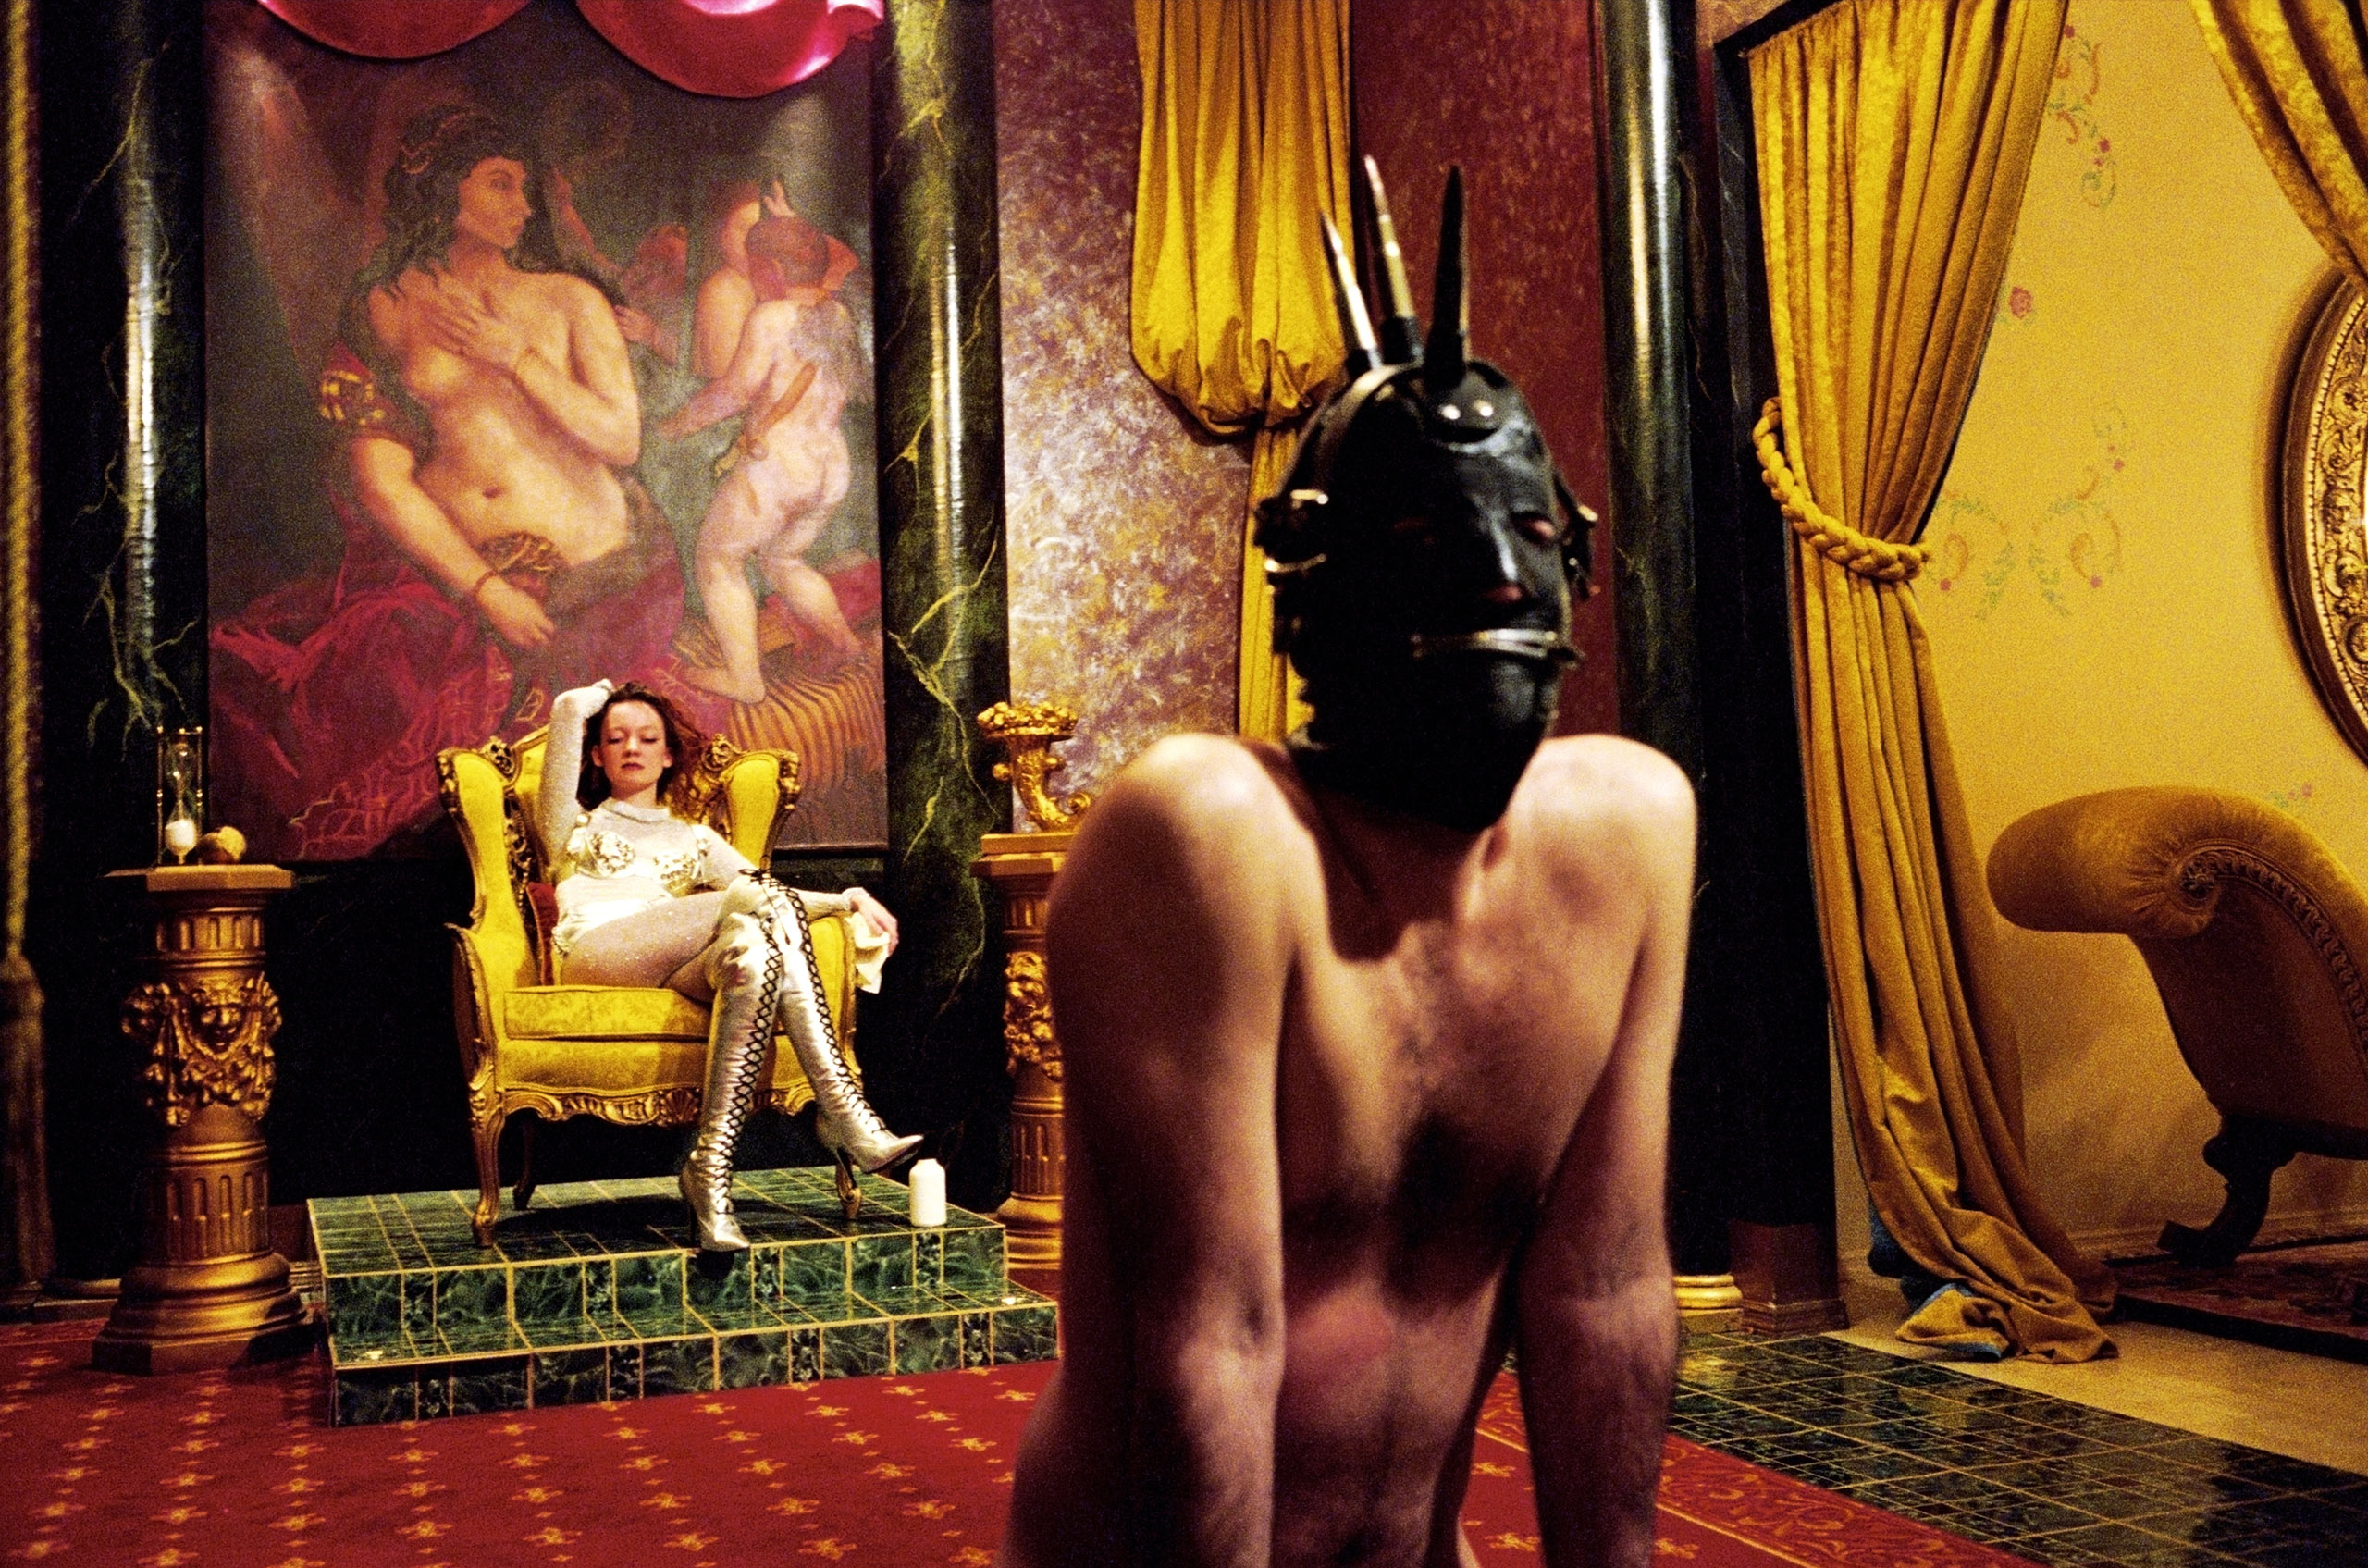 USA. New York City. 1995. Pandora's Box, Mistress Catherine after the Whipping I, The Versailles Room.